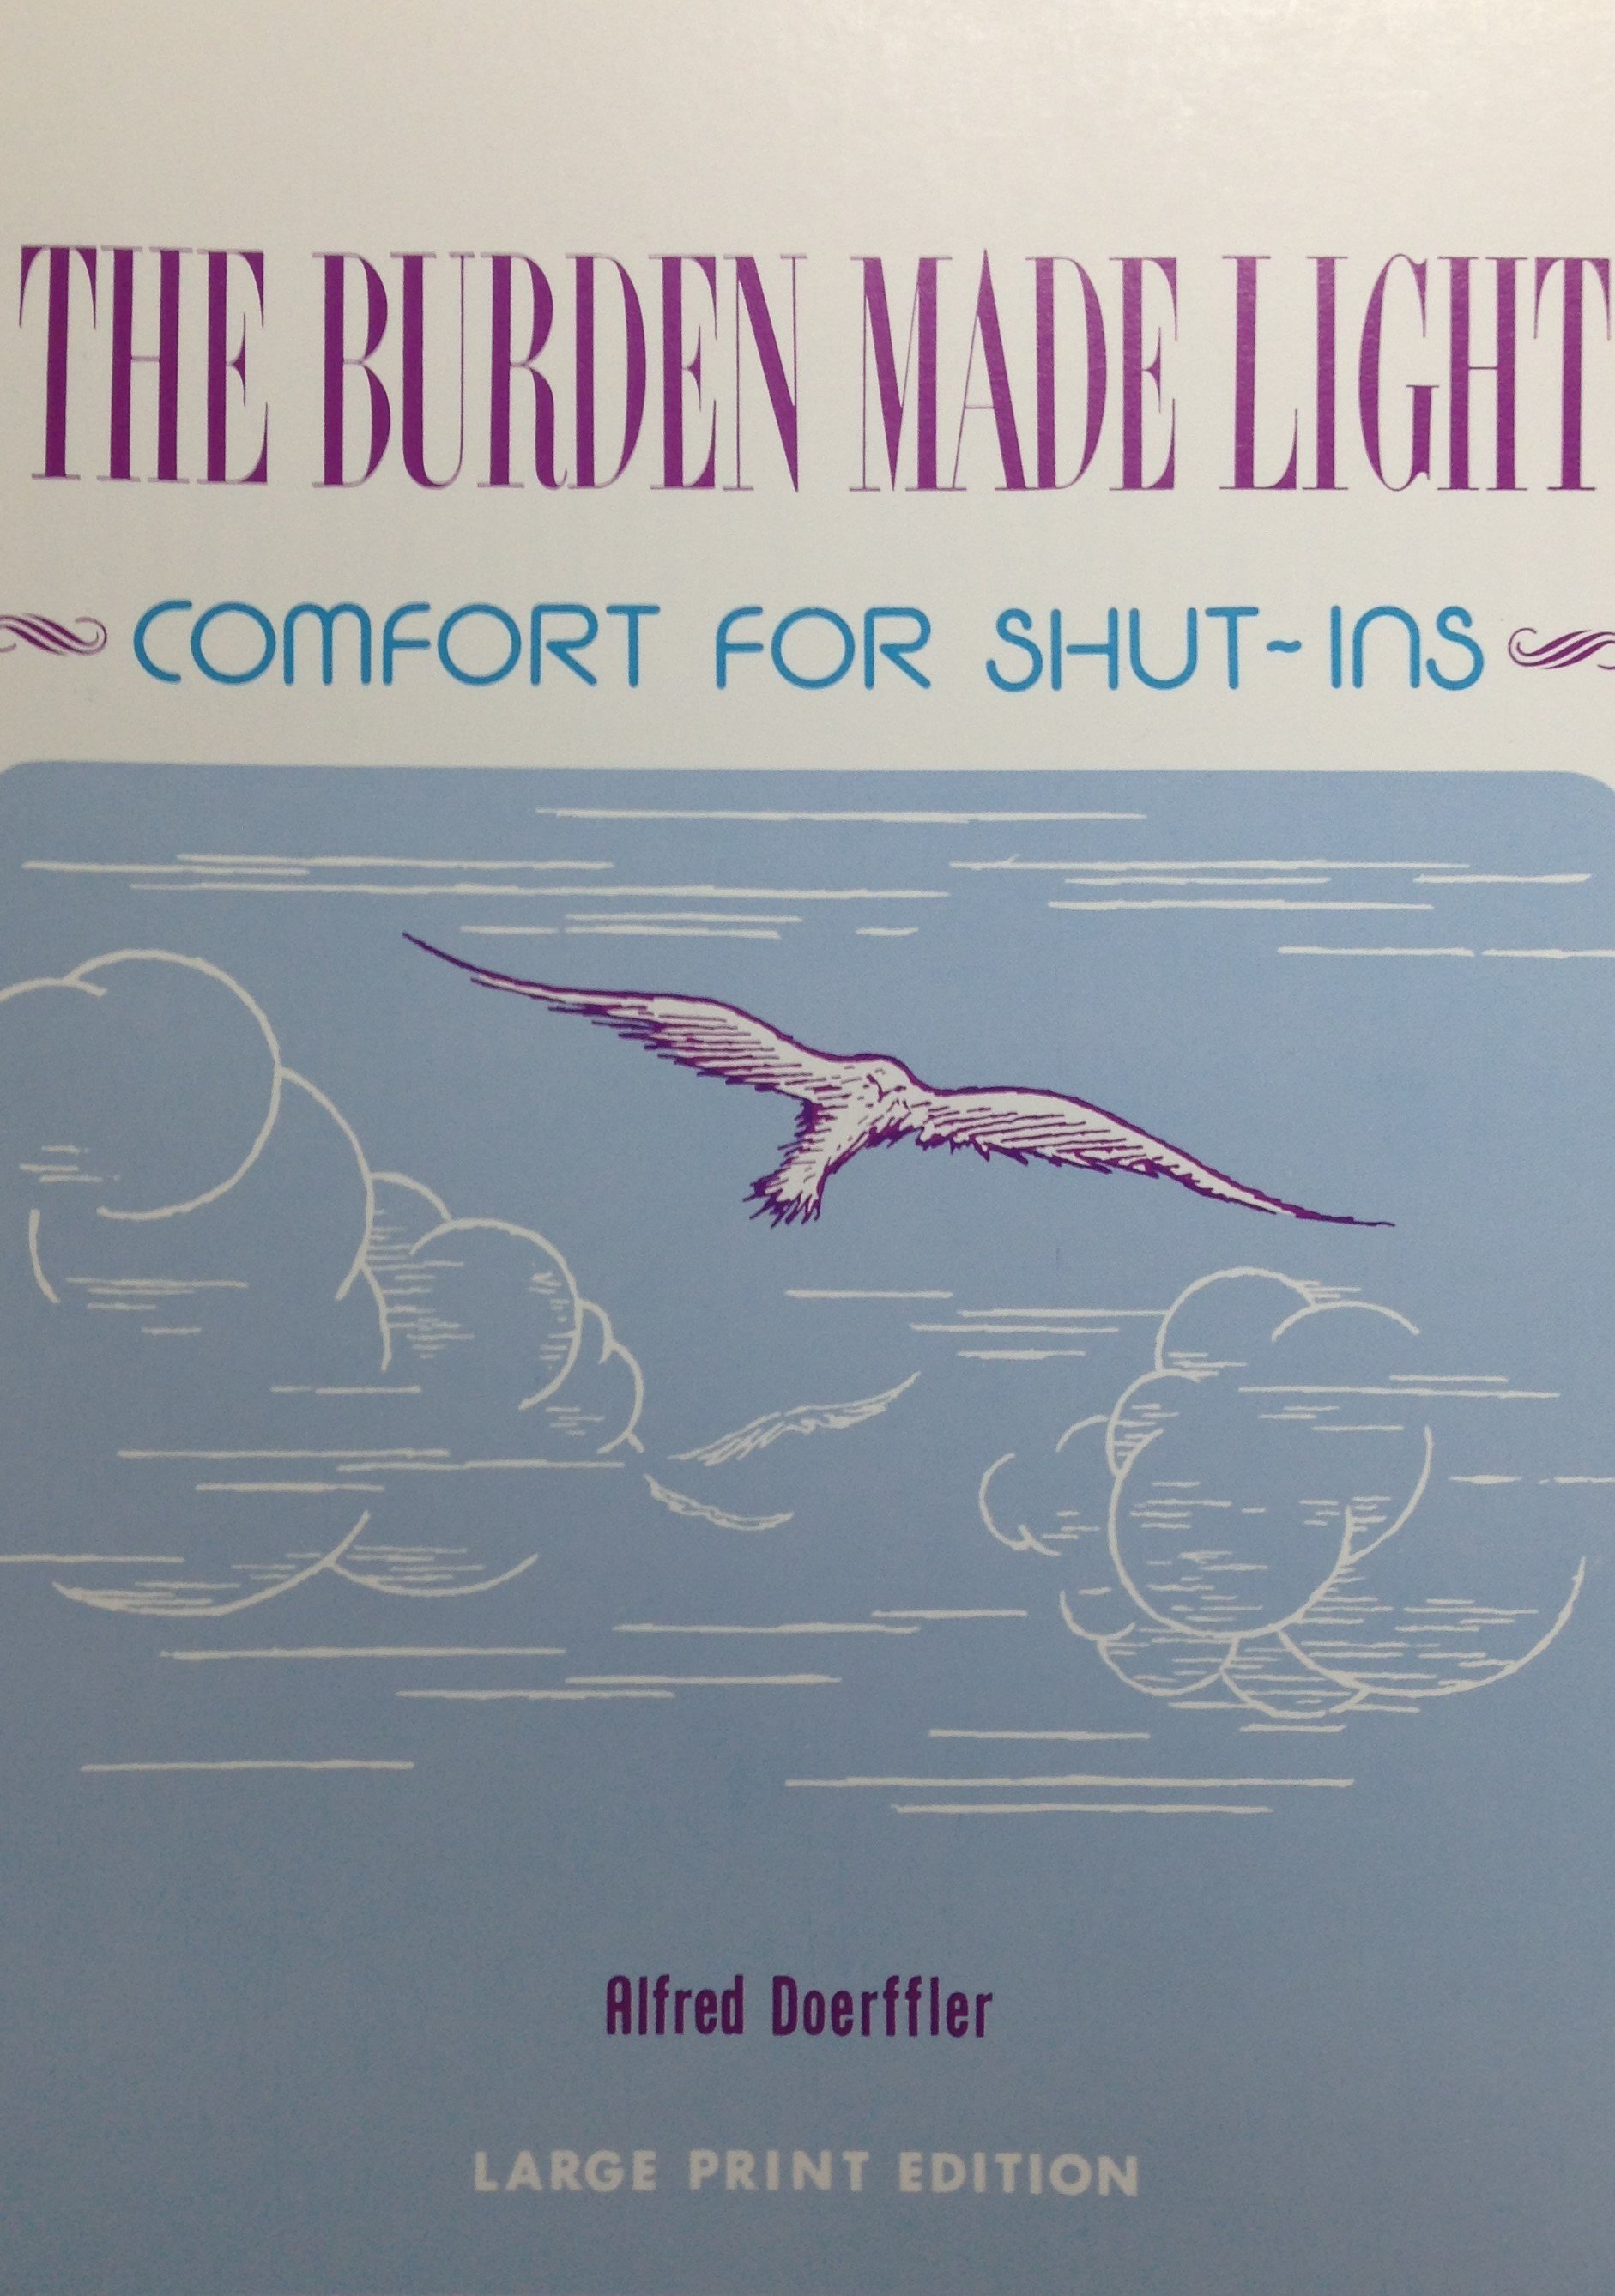 The Burden Made Light:  Comfort for Shut-Ins by Alfred Doerffler  (LARGE PRINT EDITION) 00056